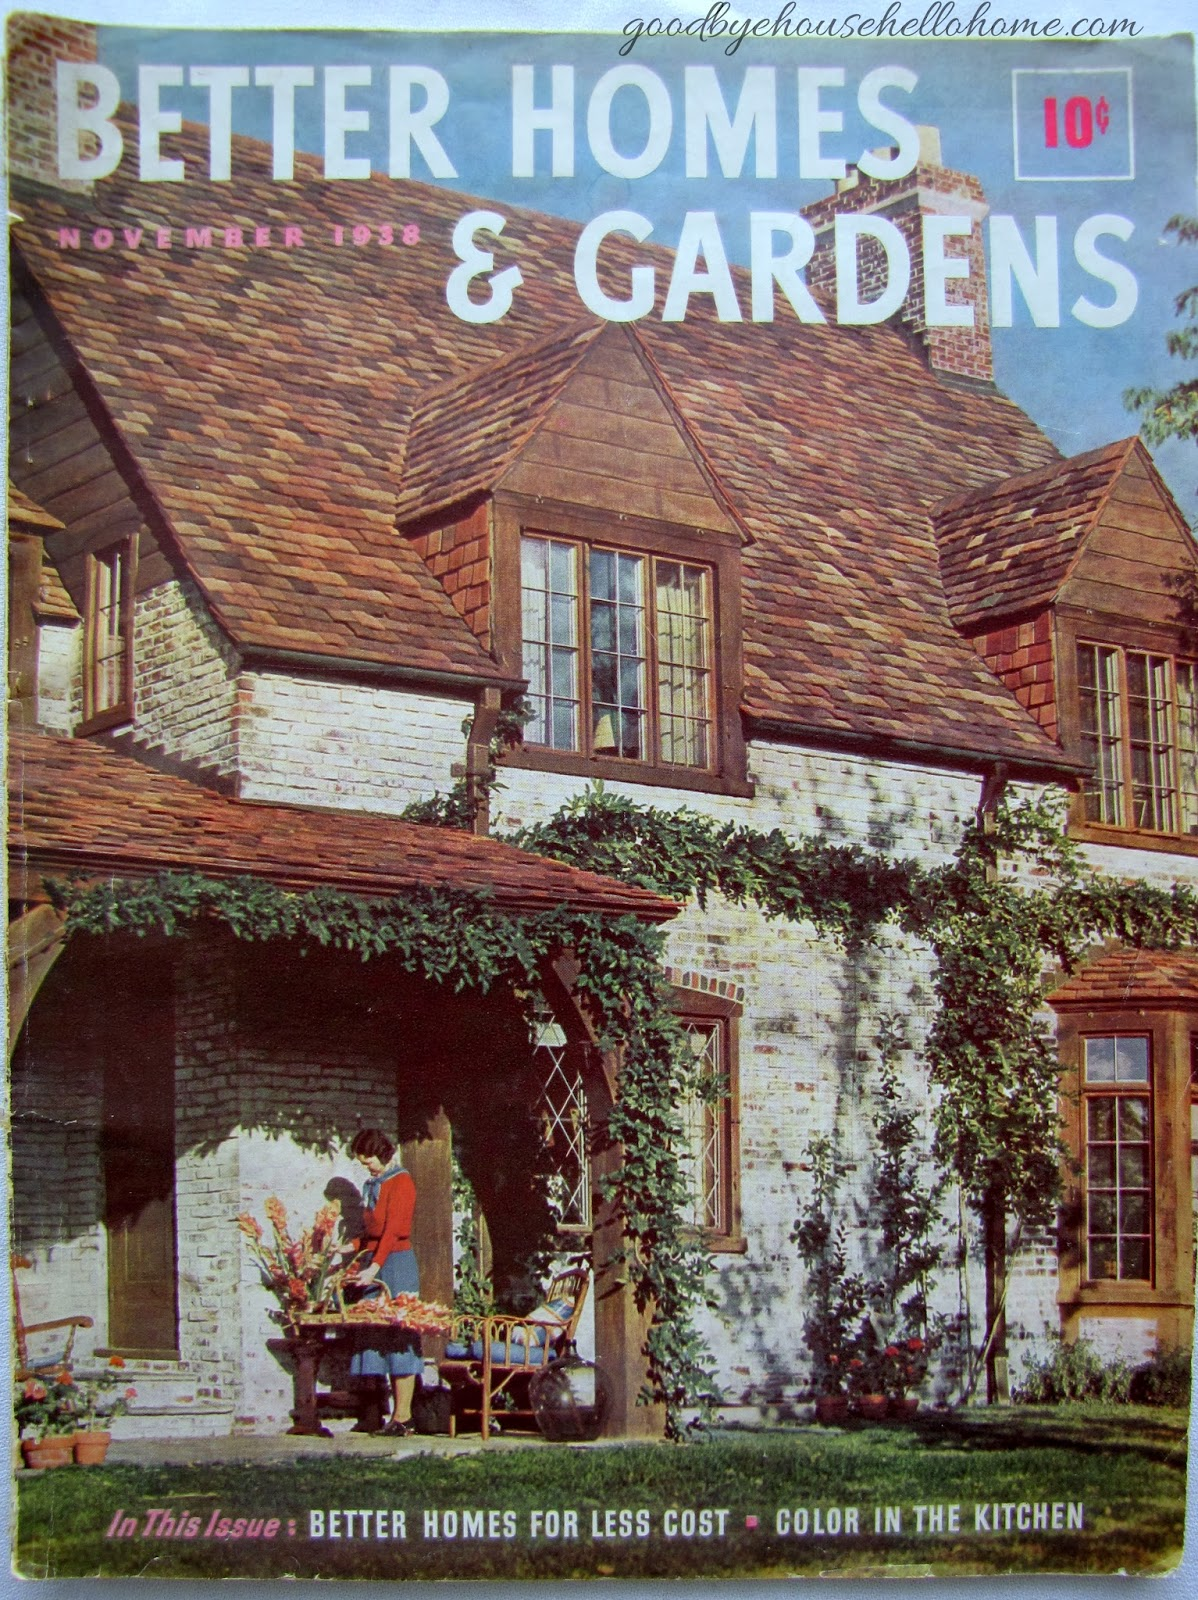 Goodbye House Hello Home Blog November 1938 Better Homes and